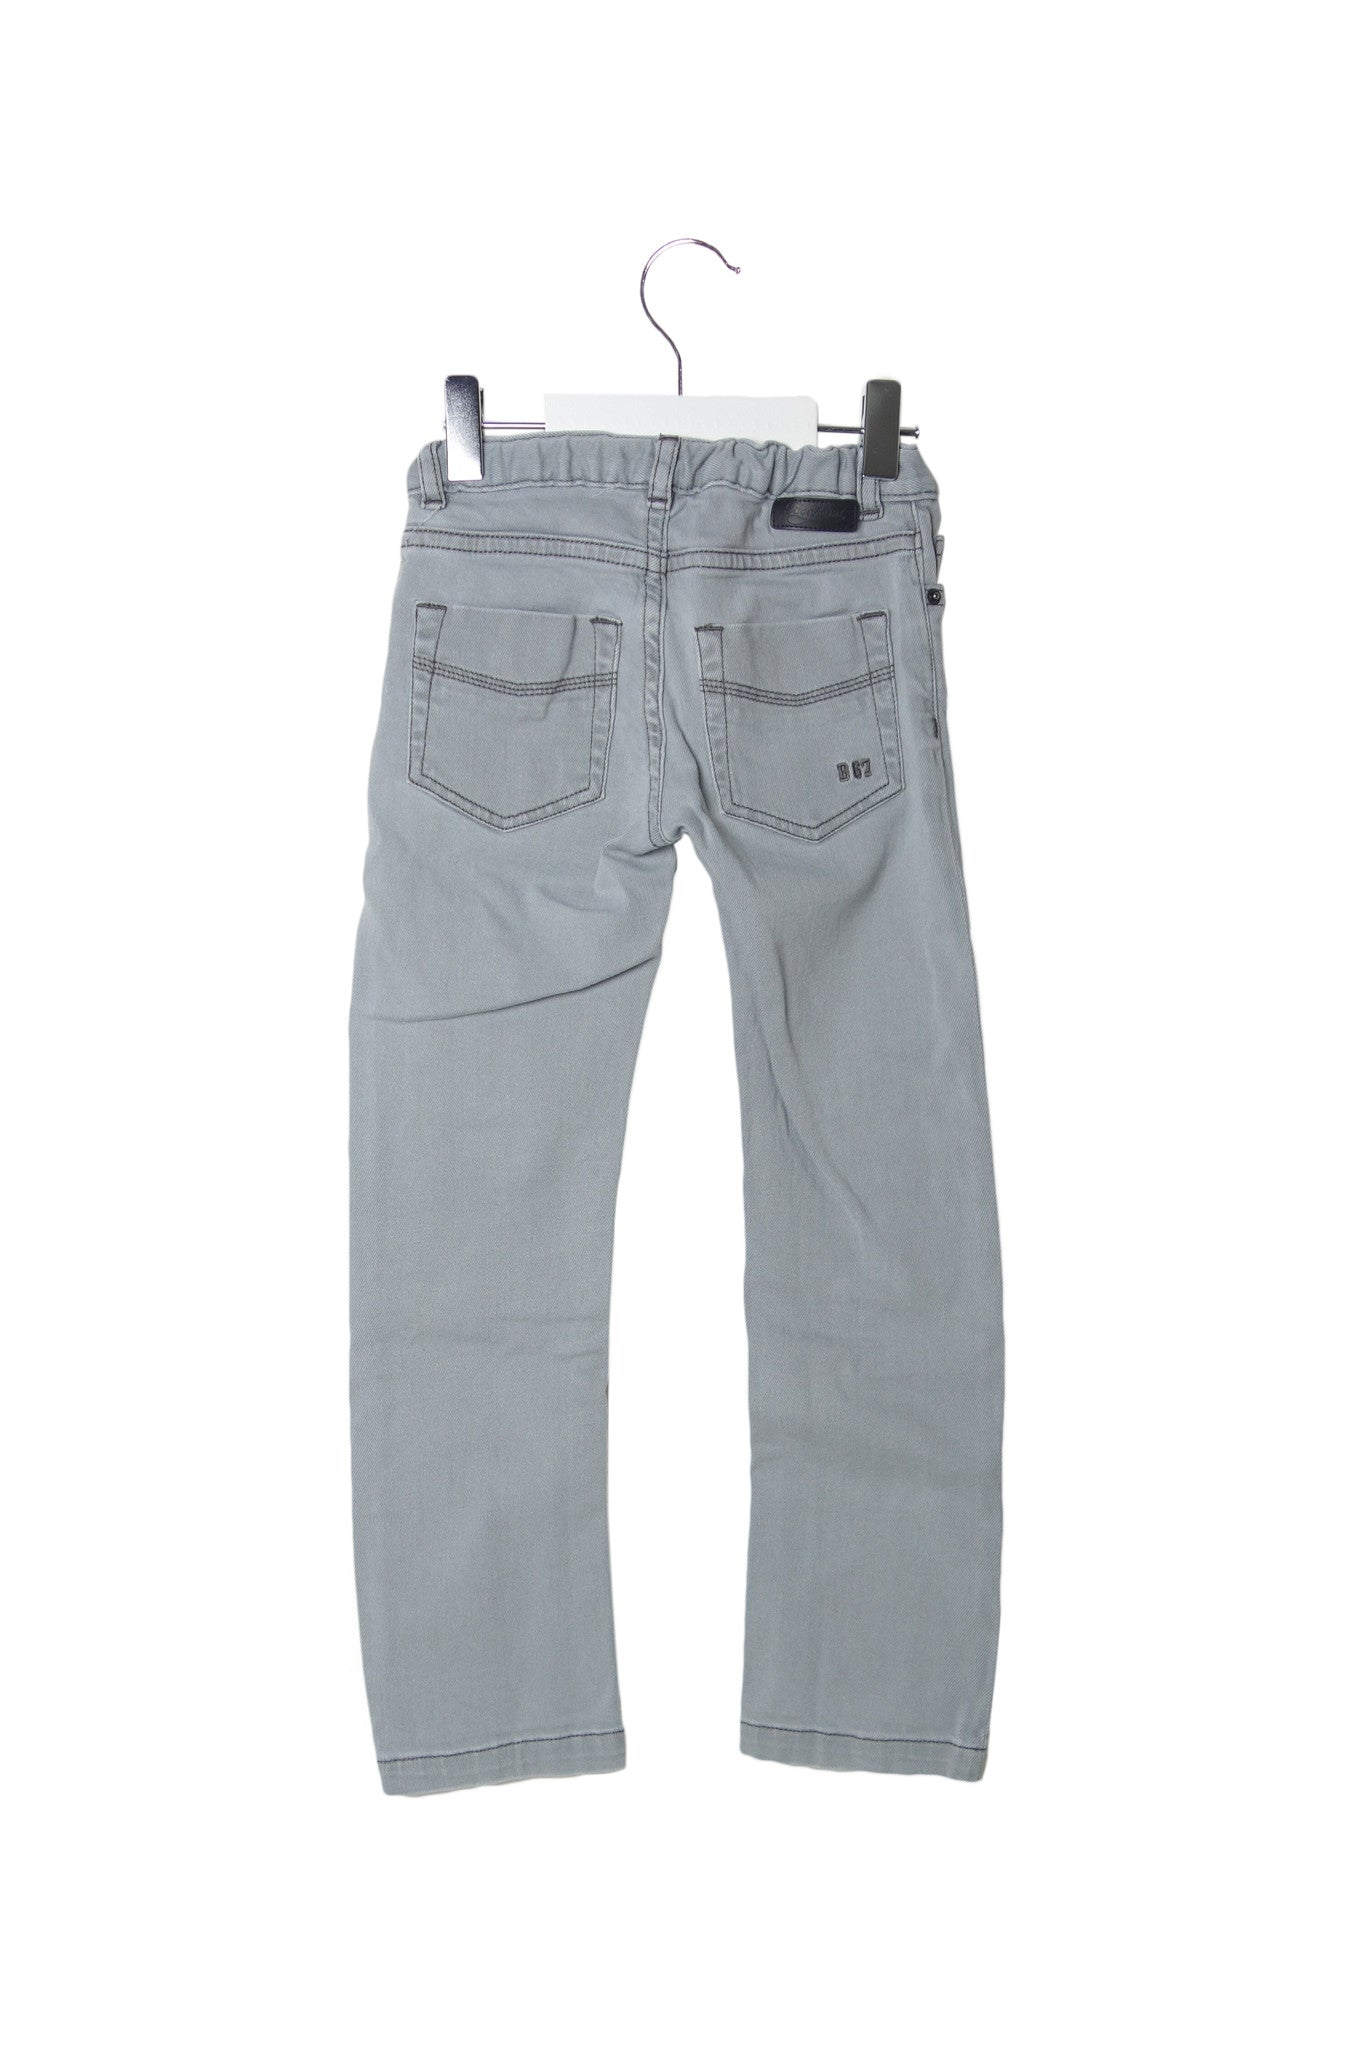 10002544 Bonpoint Kids~Jeans 6T at Retykle